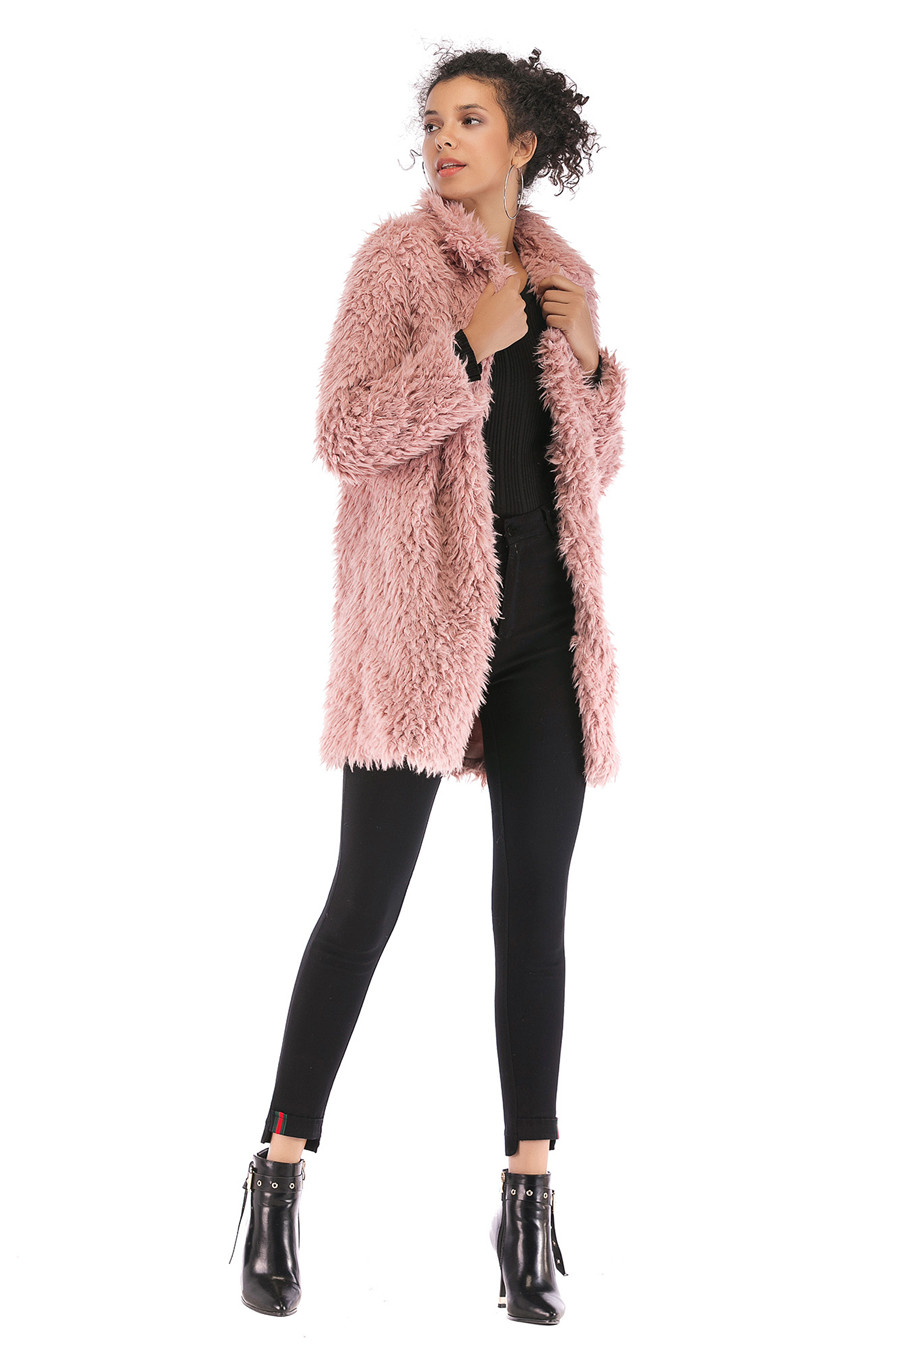 Gladiolus 2018 Women Autumn Winter Coat Turn-Down Collar Long Sleeve Covered Button Long Warm Shaggy Faux Fur Coat Women Jackets (31)